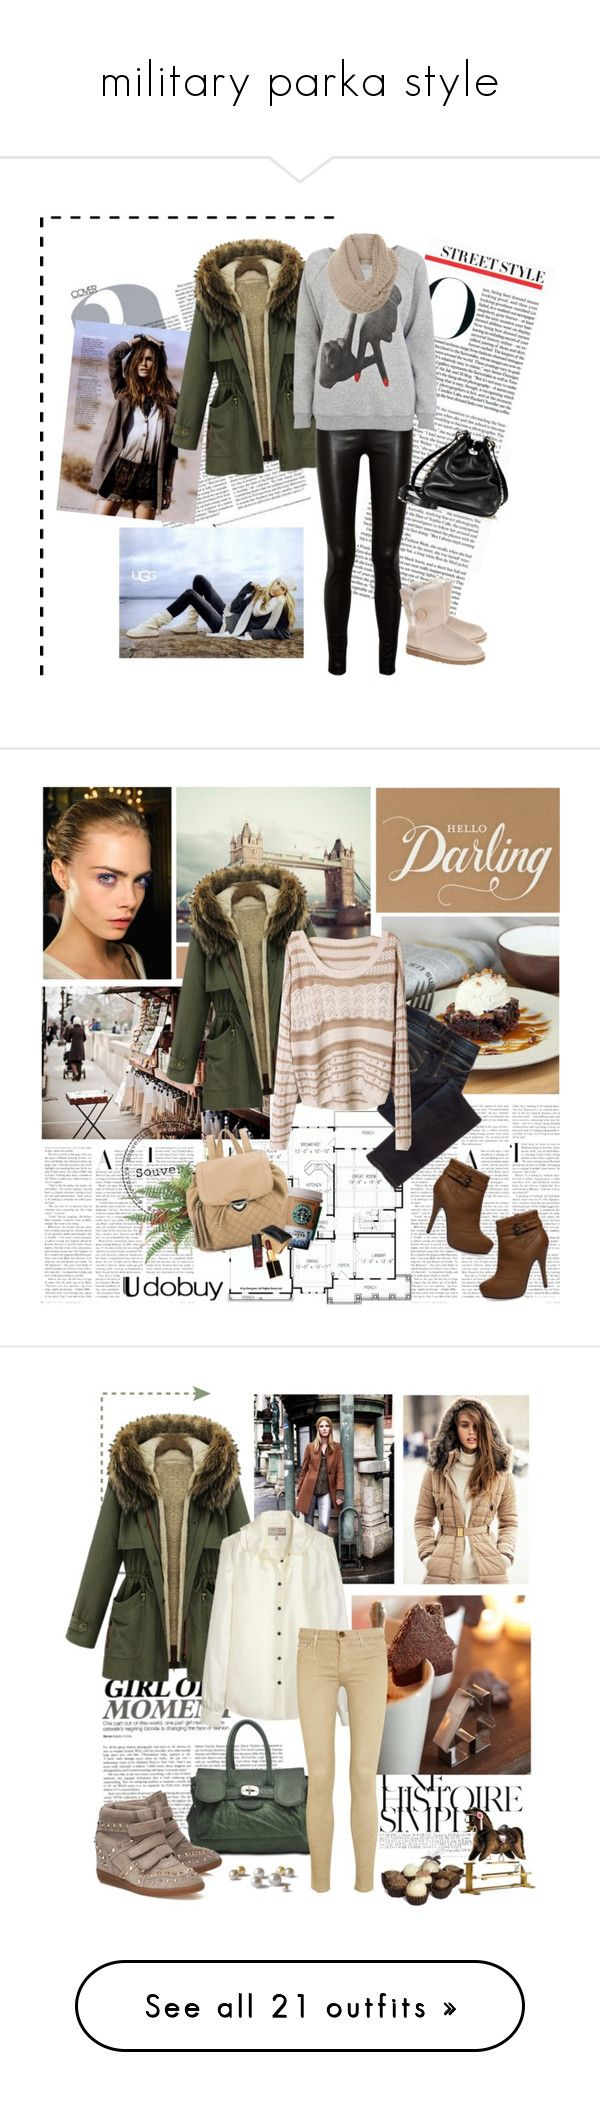 """""""military parka style"""" by martex ❤ liked on Polyvore featuring The Row, To The Black, UGG Australia, A